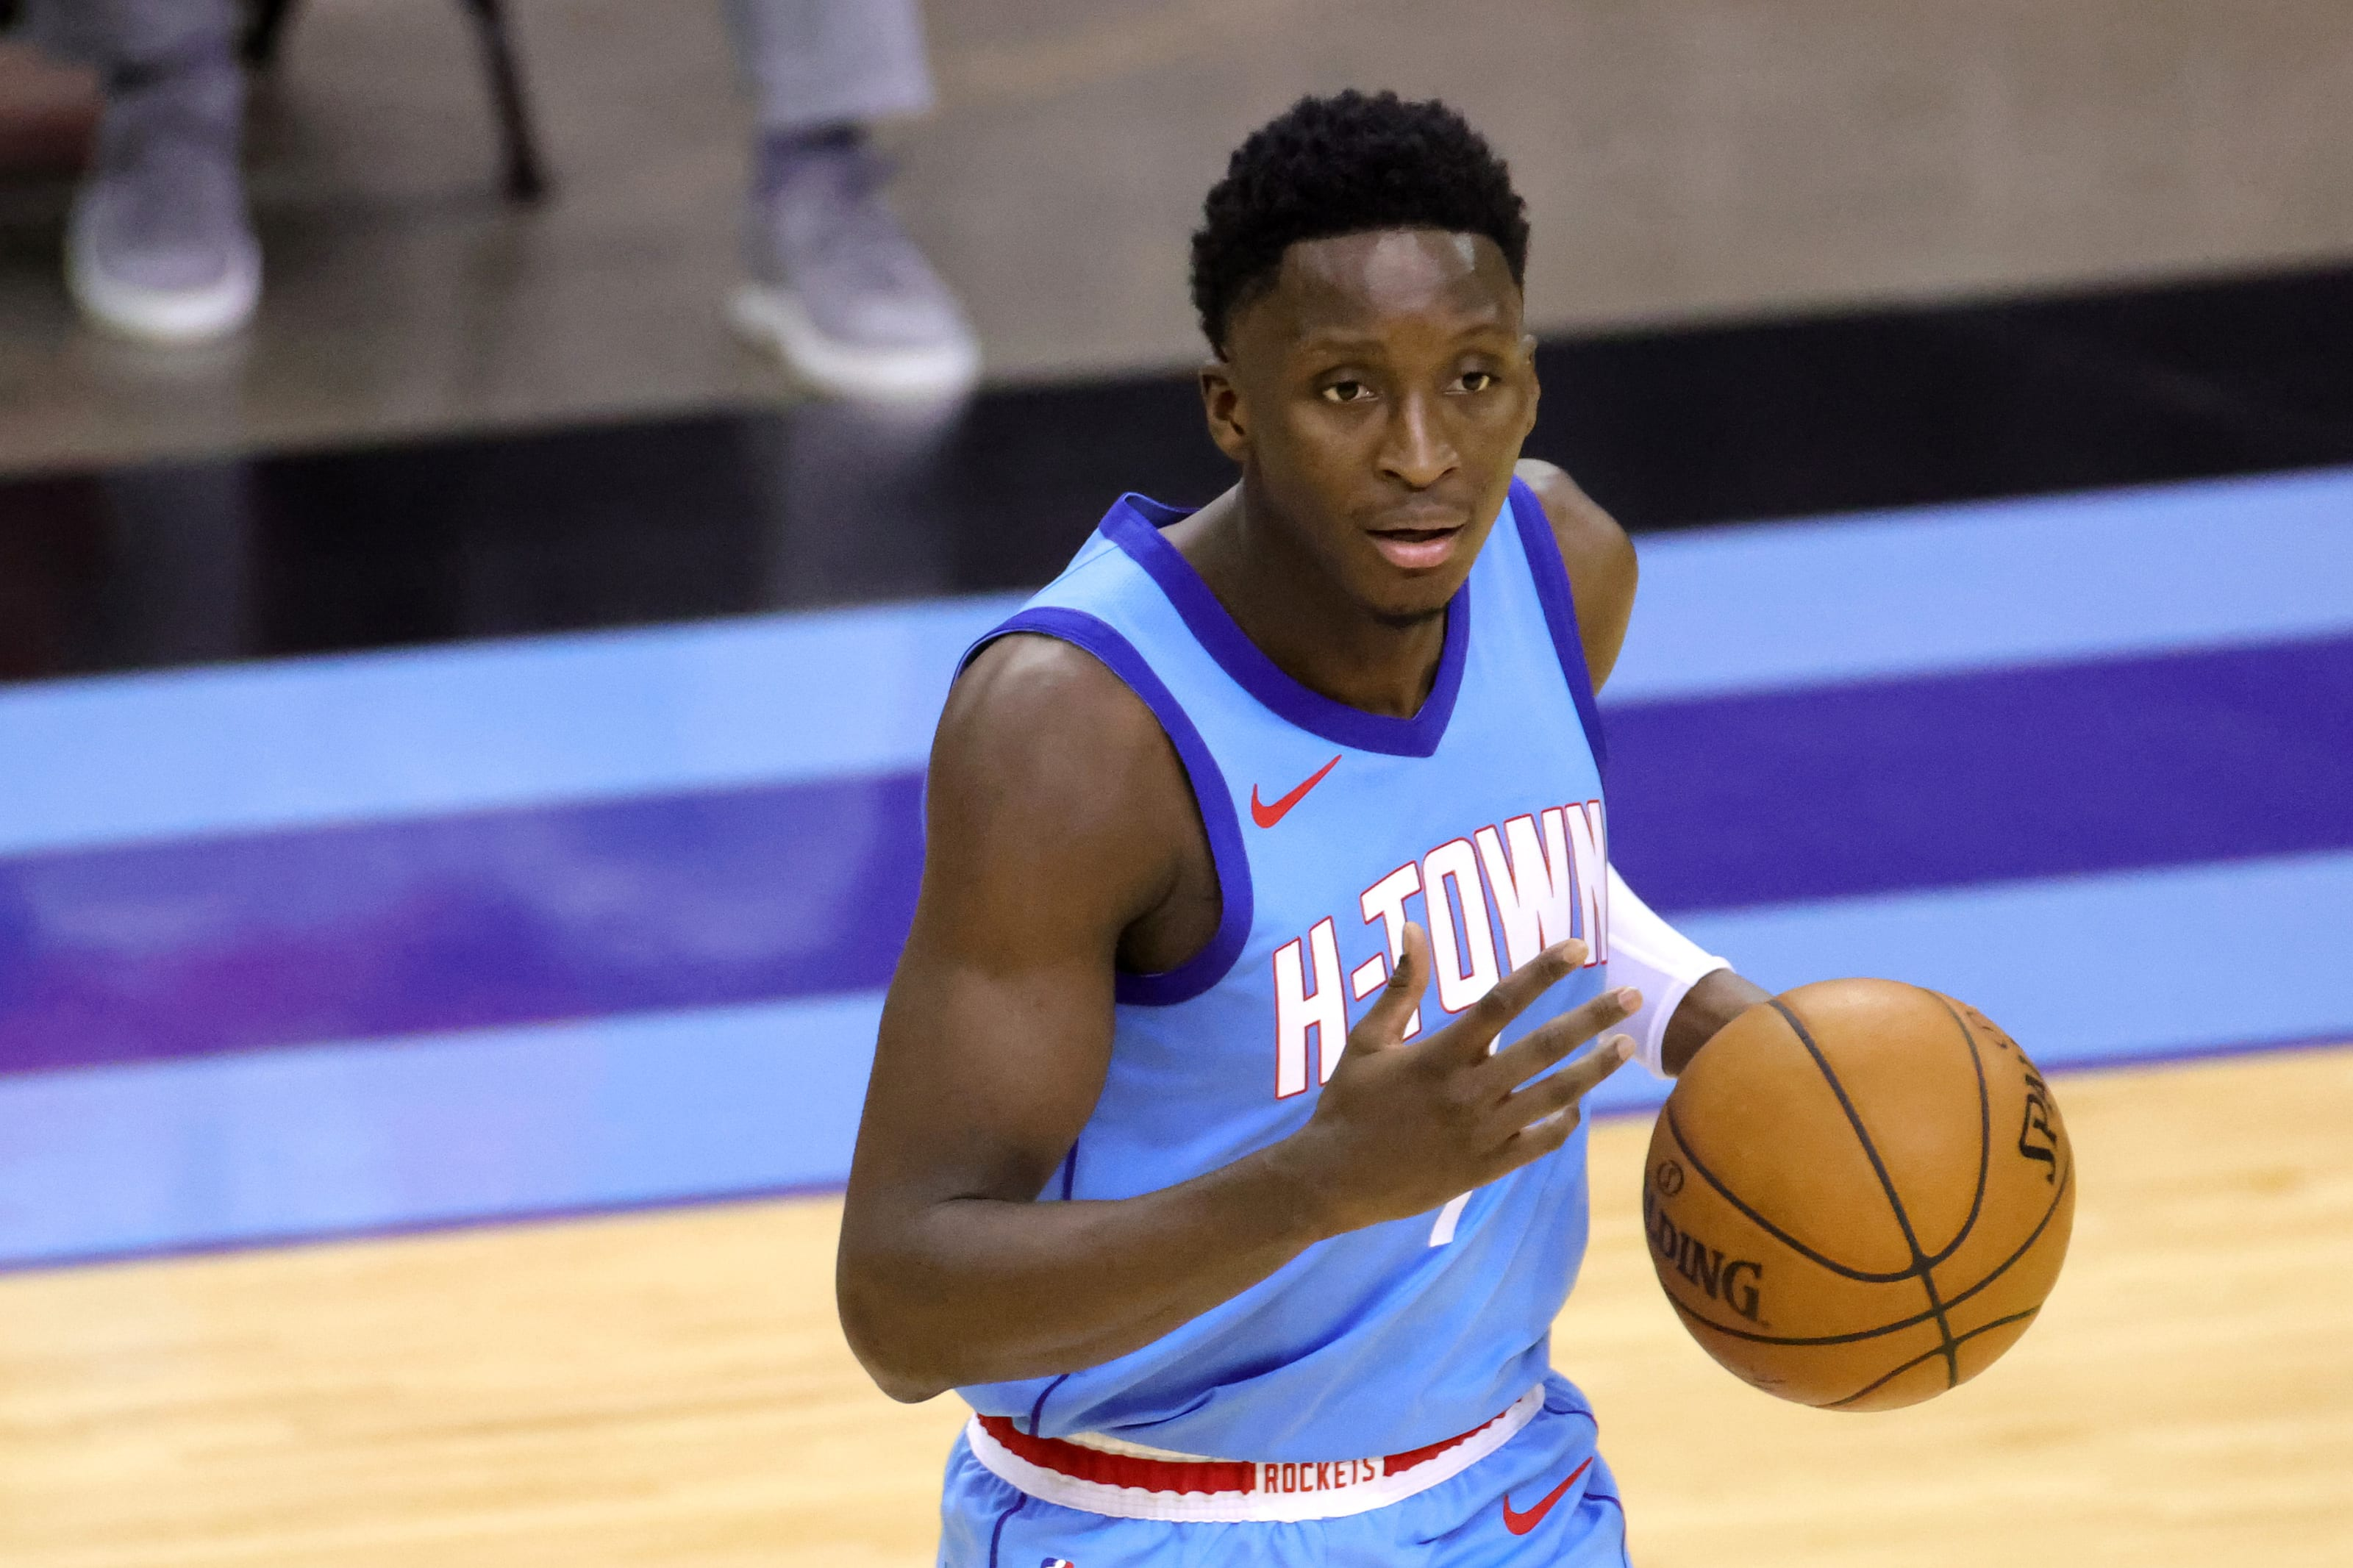 4 trades for Victor Oladipo that the Golden State Warriors should consider - Page 2